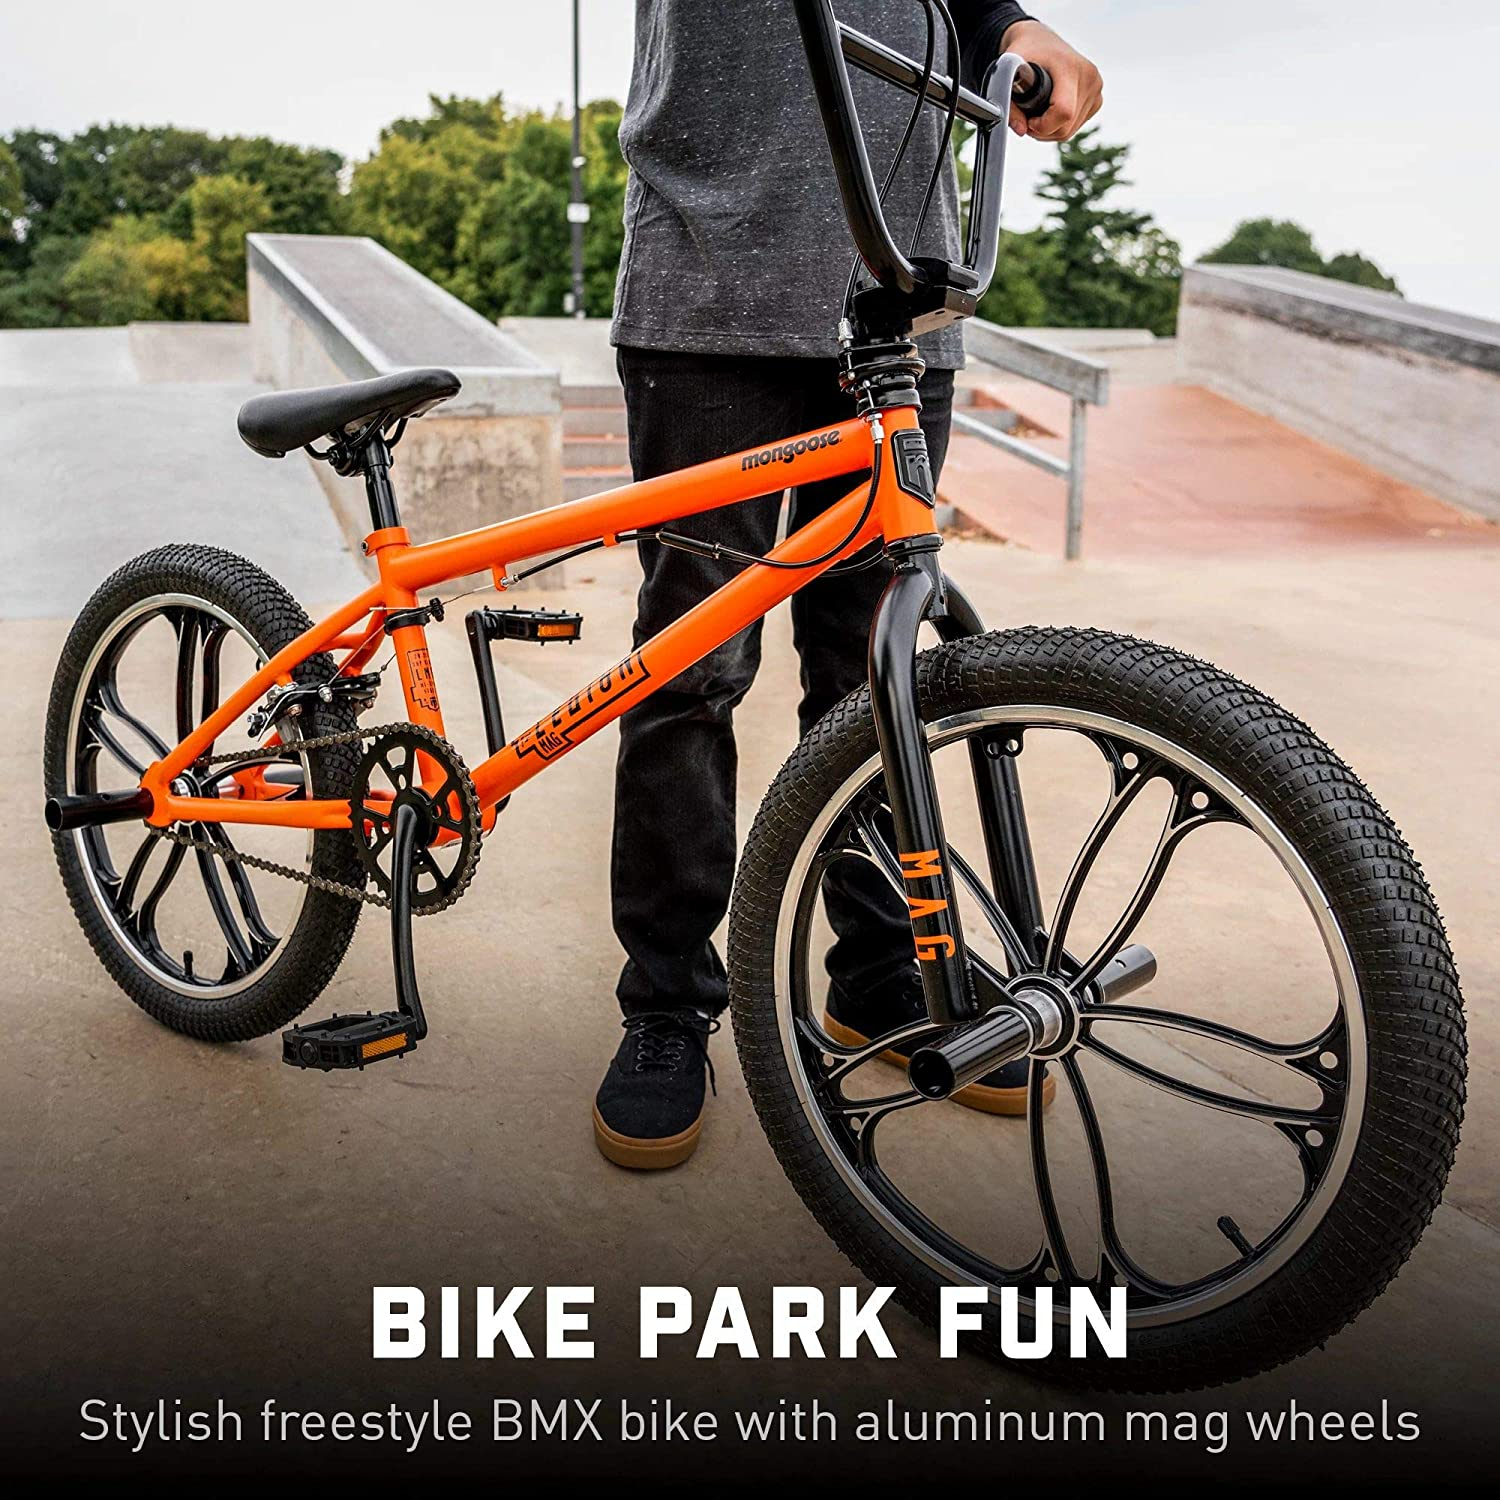 Mongoose Legion Mag Freestyle Sidewalk BMX Bike for Kids, Children and Beginner-Level to Advanced Riders, 20-inch Wheels, Hi-Ten Steel Frame, Micro Drive 25x9T BMX Gearing, Silver : Everything Else